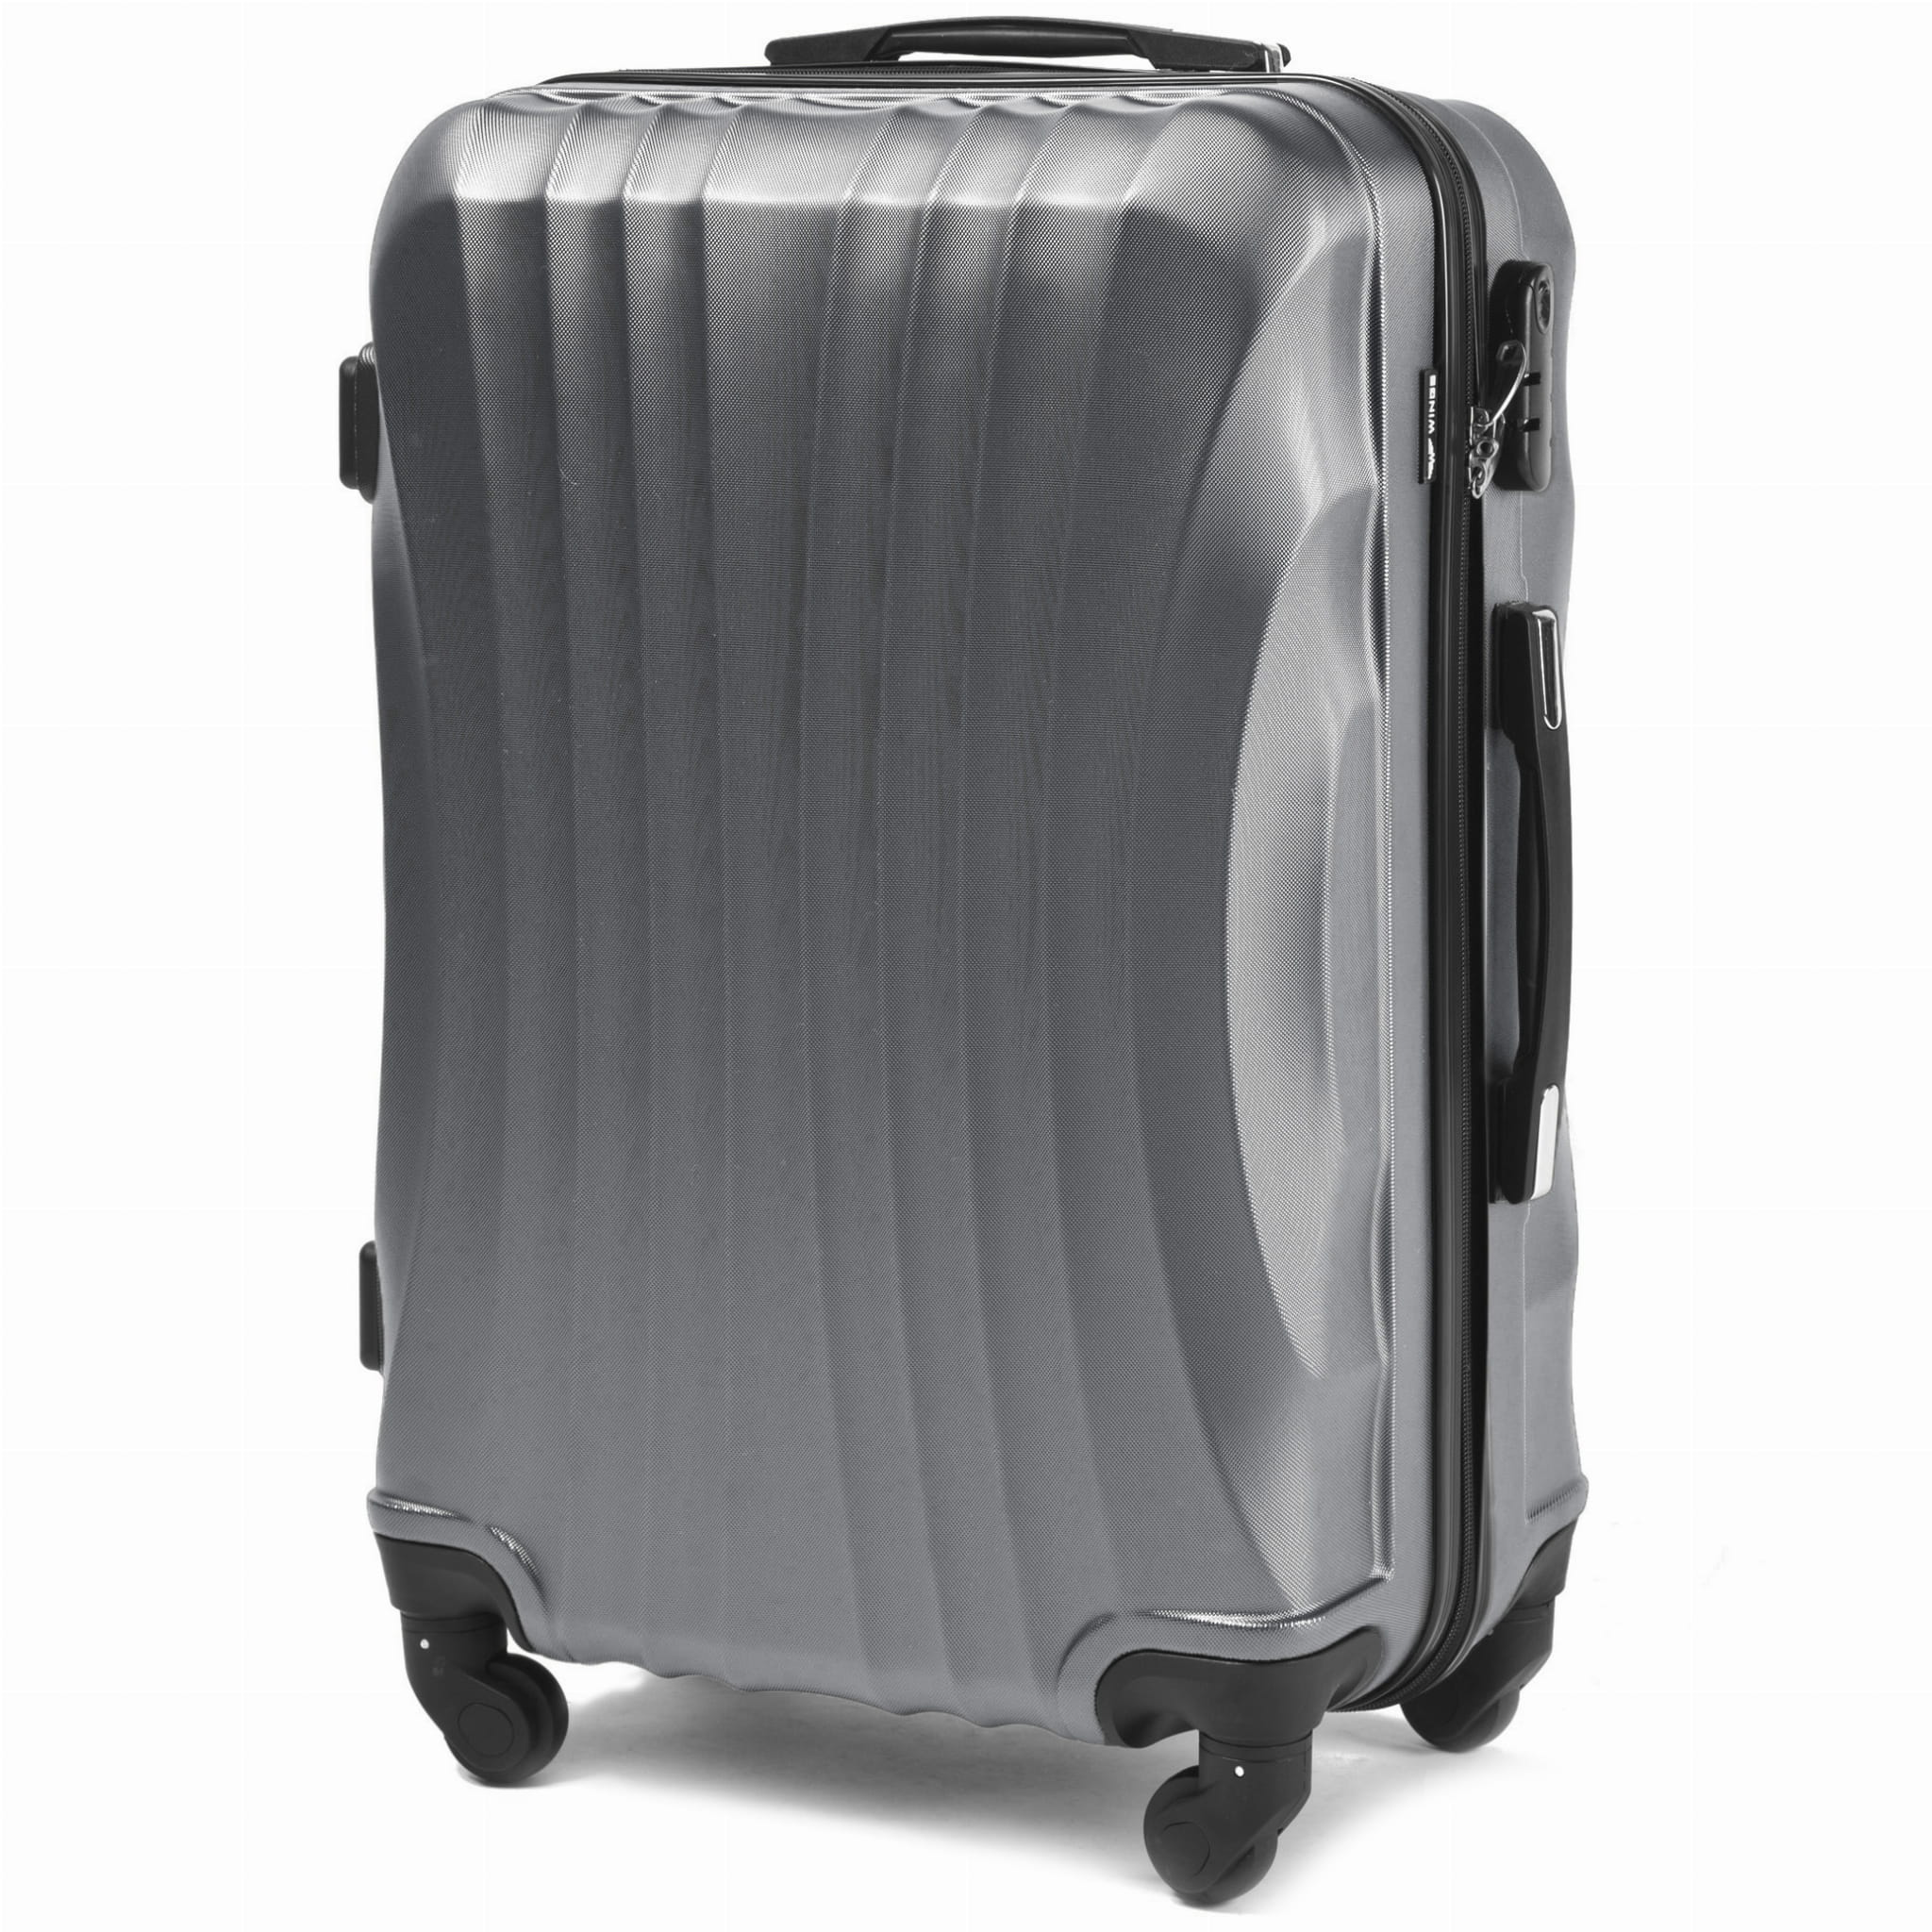 Middle Size Hard Travel Suitcase Wings Swift